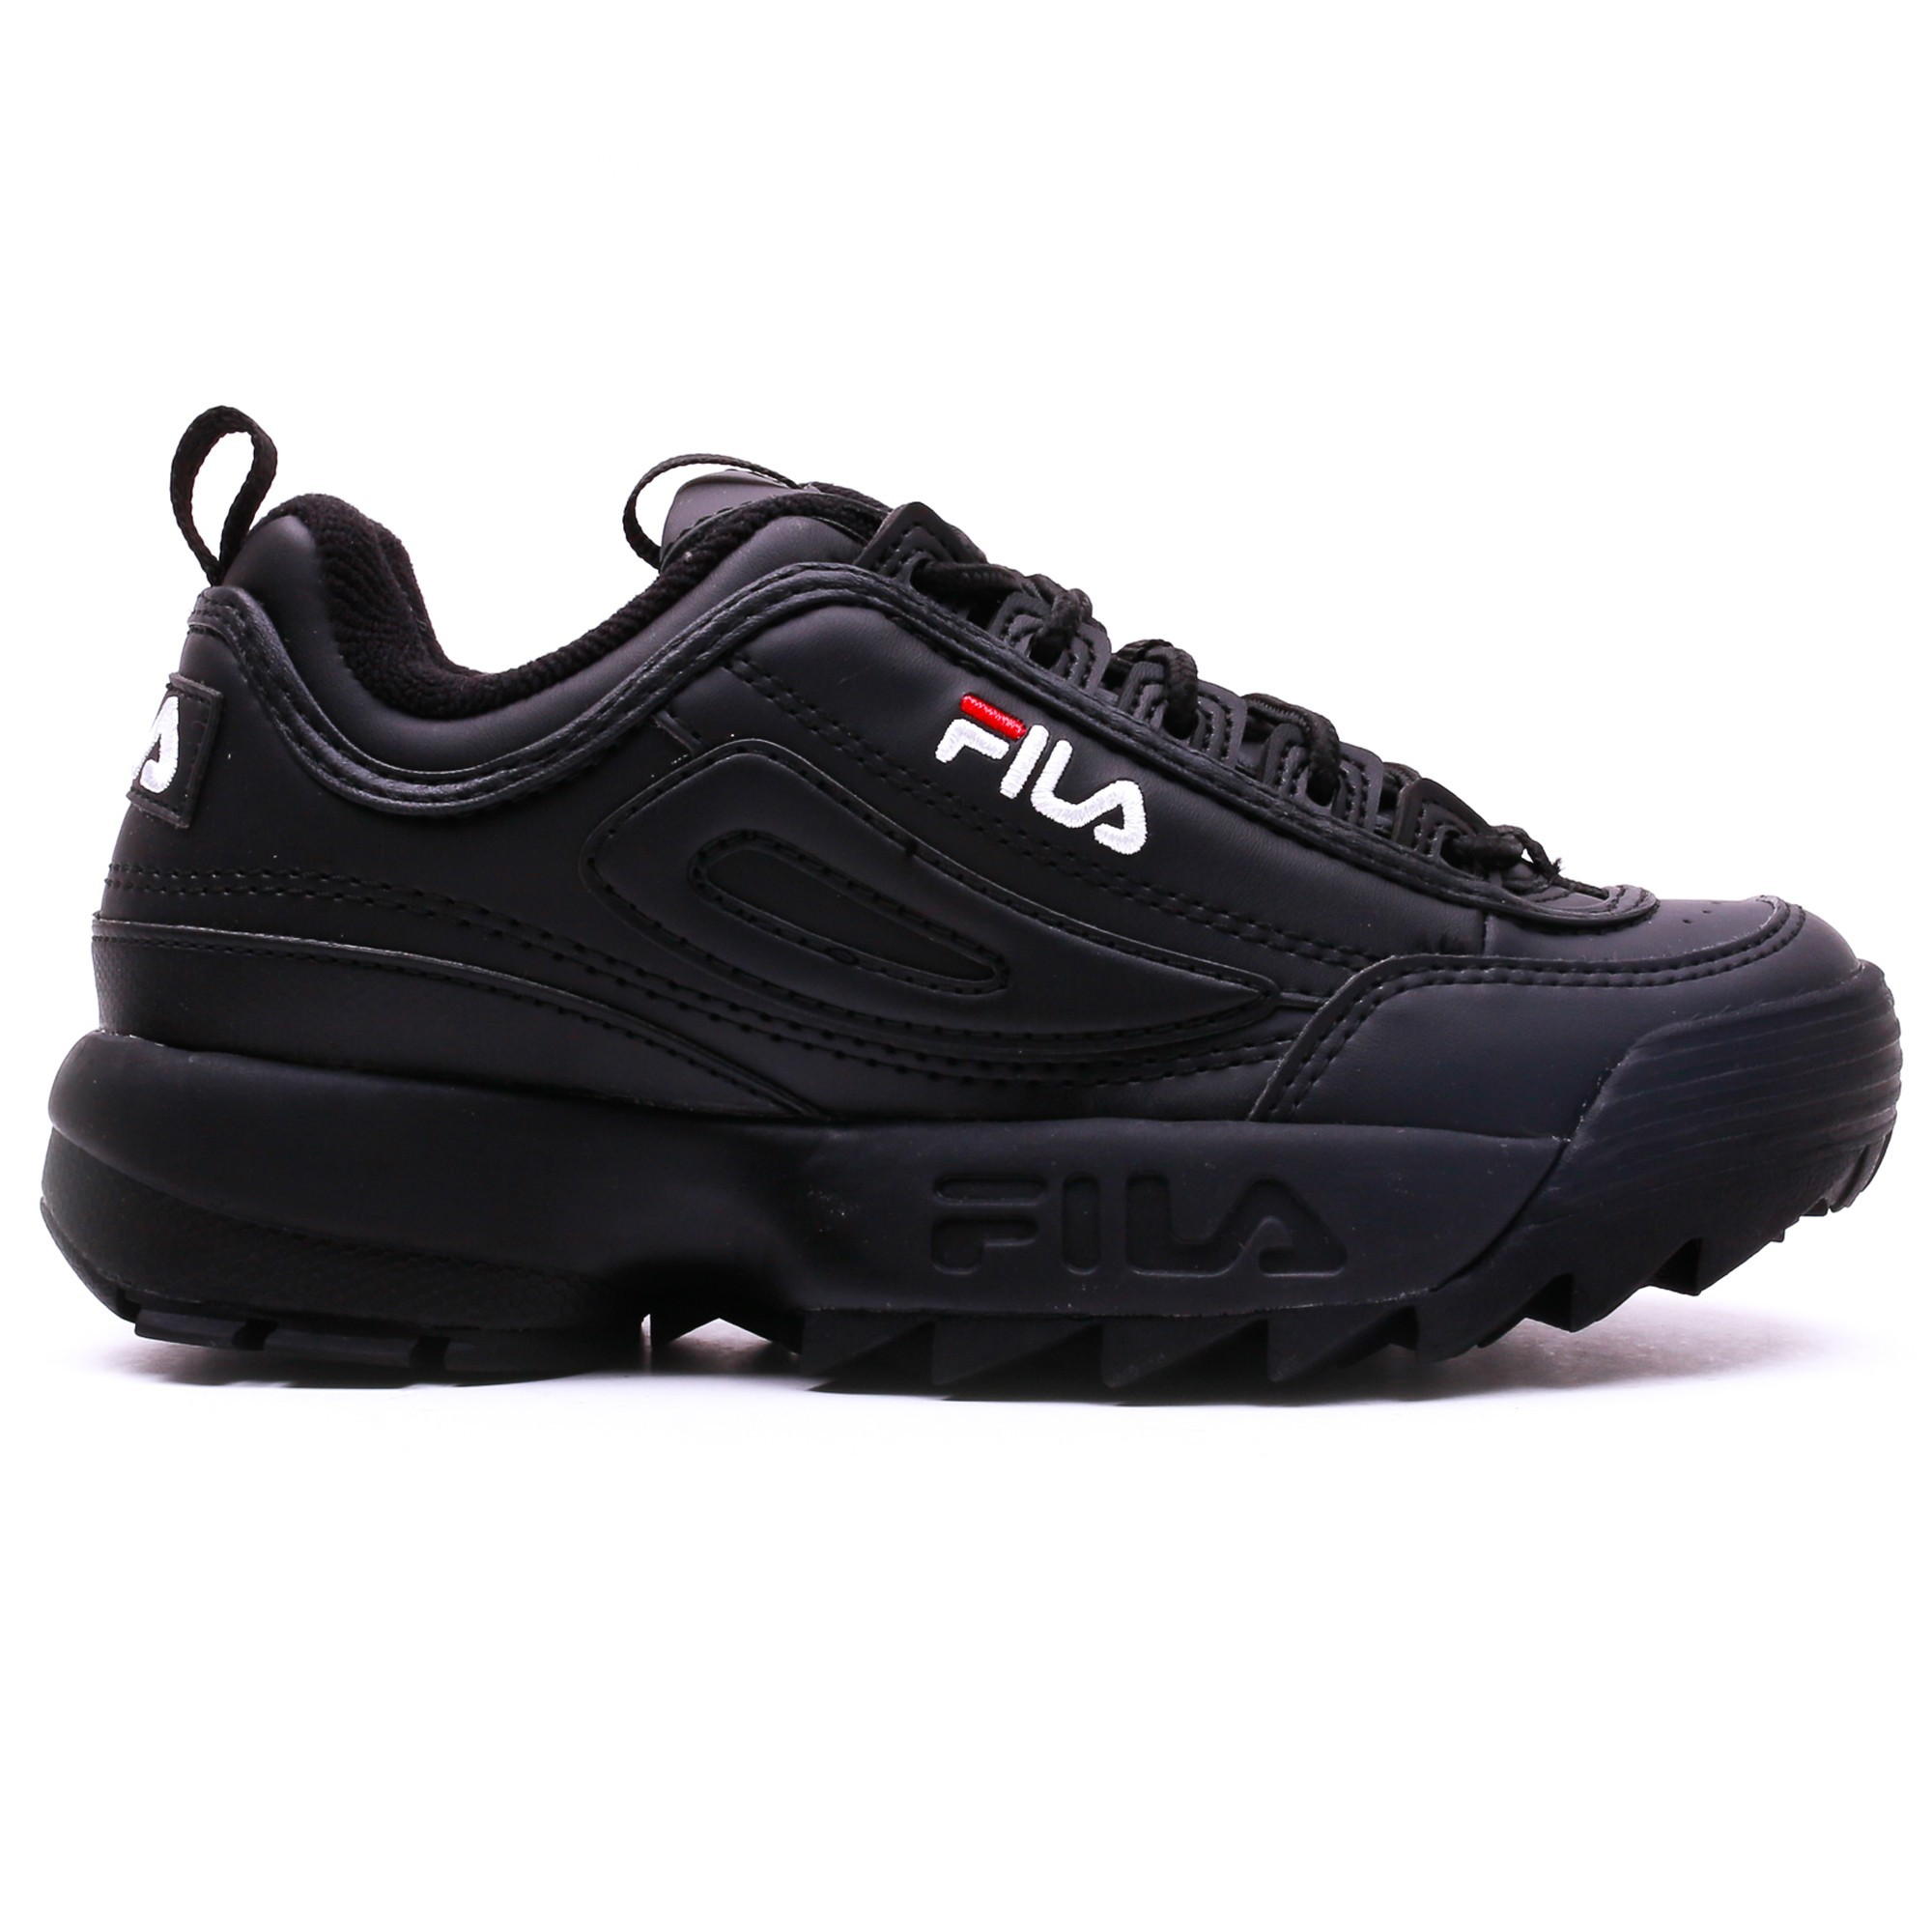 fila disruptor mens. fila disruptor low black men fila disruptor mens